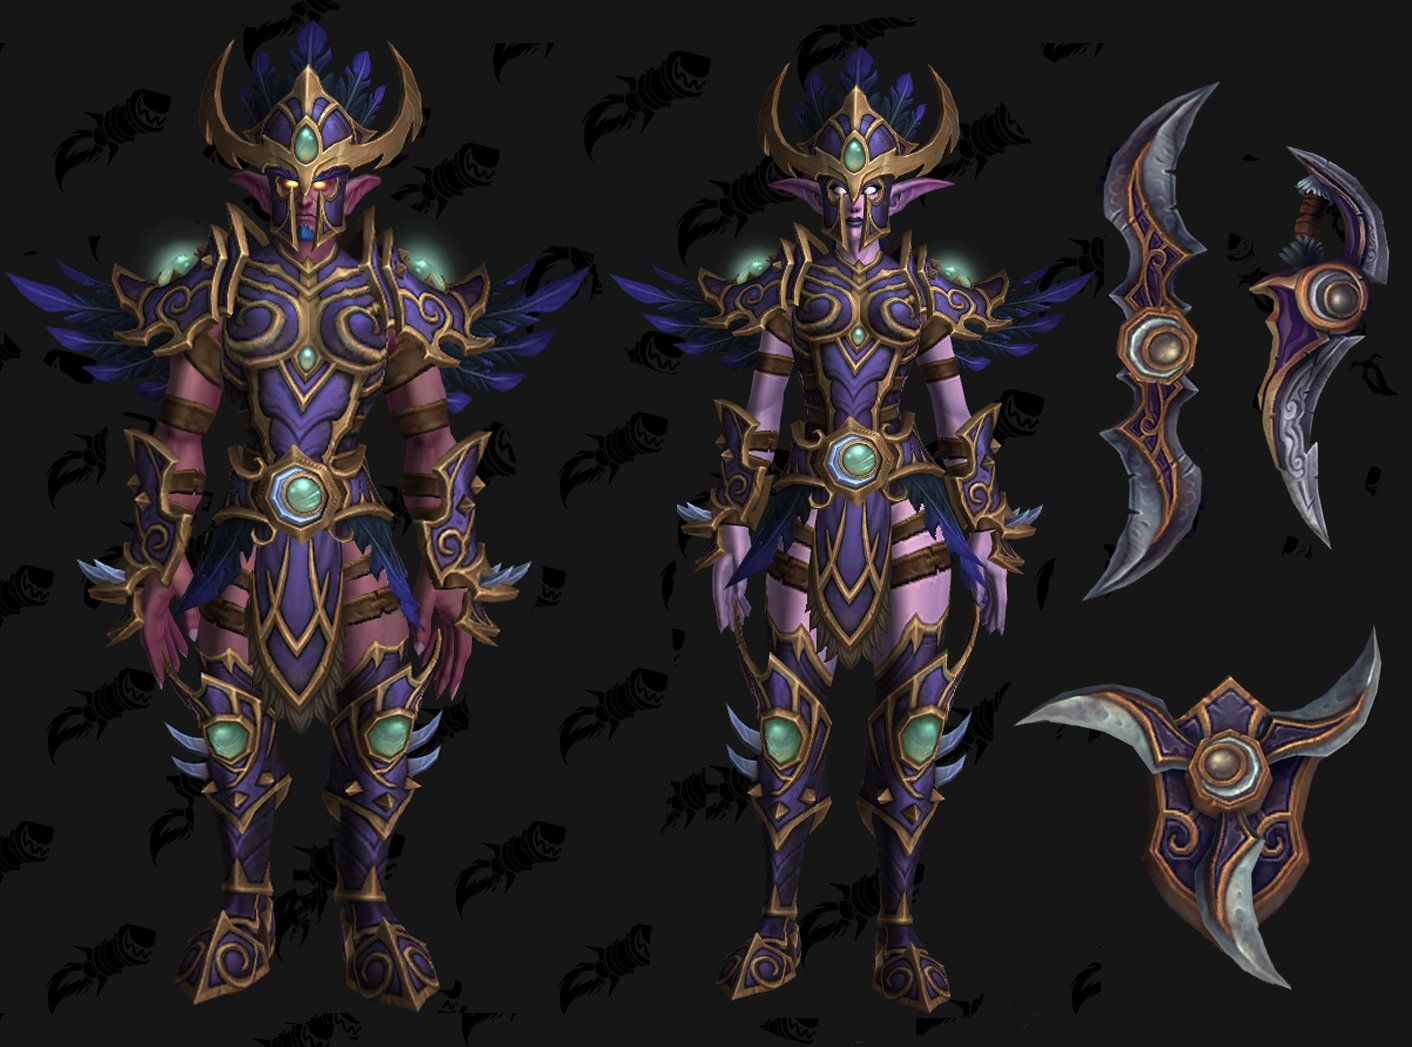 Just Found This Fan Made Night Elf Heritage Armor Concept And Its Awesome Worldofwarcraft Blizzard Hearthstone Wow W Night Elf Elf Armor World Of Warcraft I've gone ahead and updated the o.p. night elf elf armor